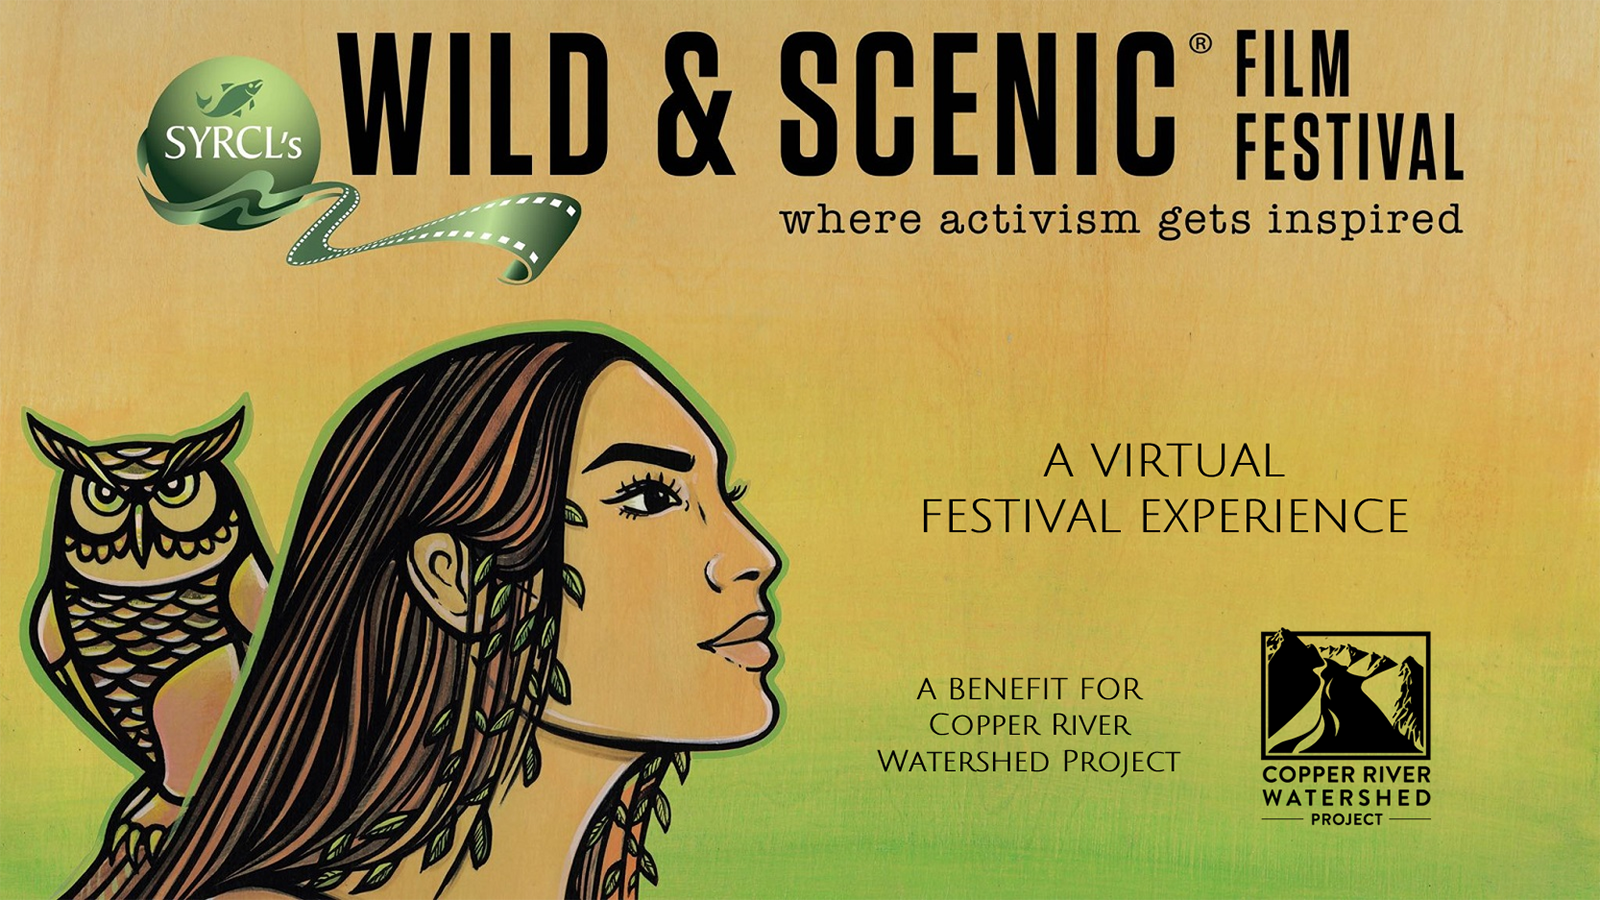 Copper River Watershed Project Presents SYRCL's Wild & Scenic Film Festival On Tour